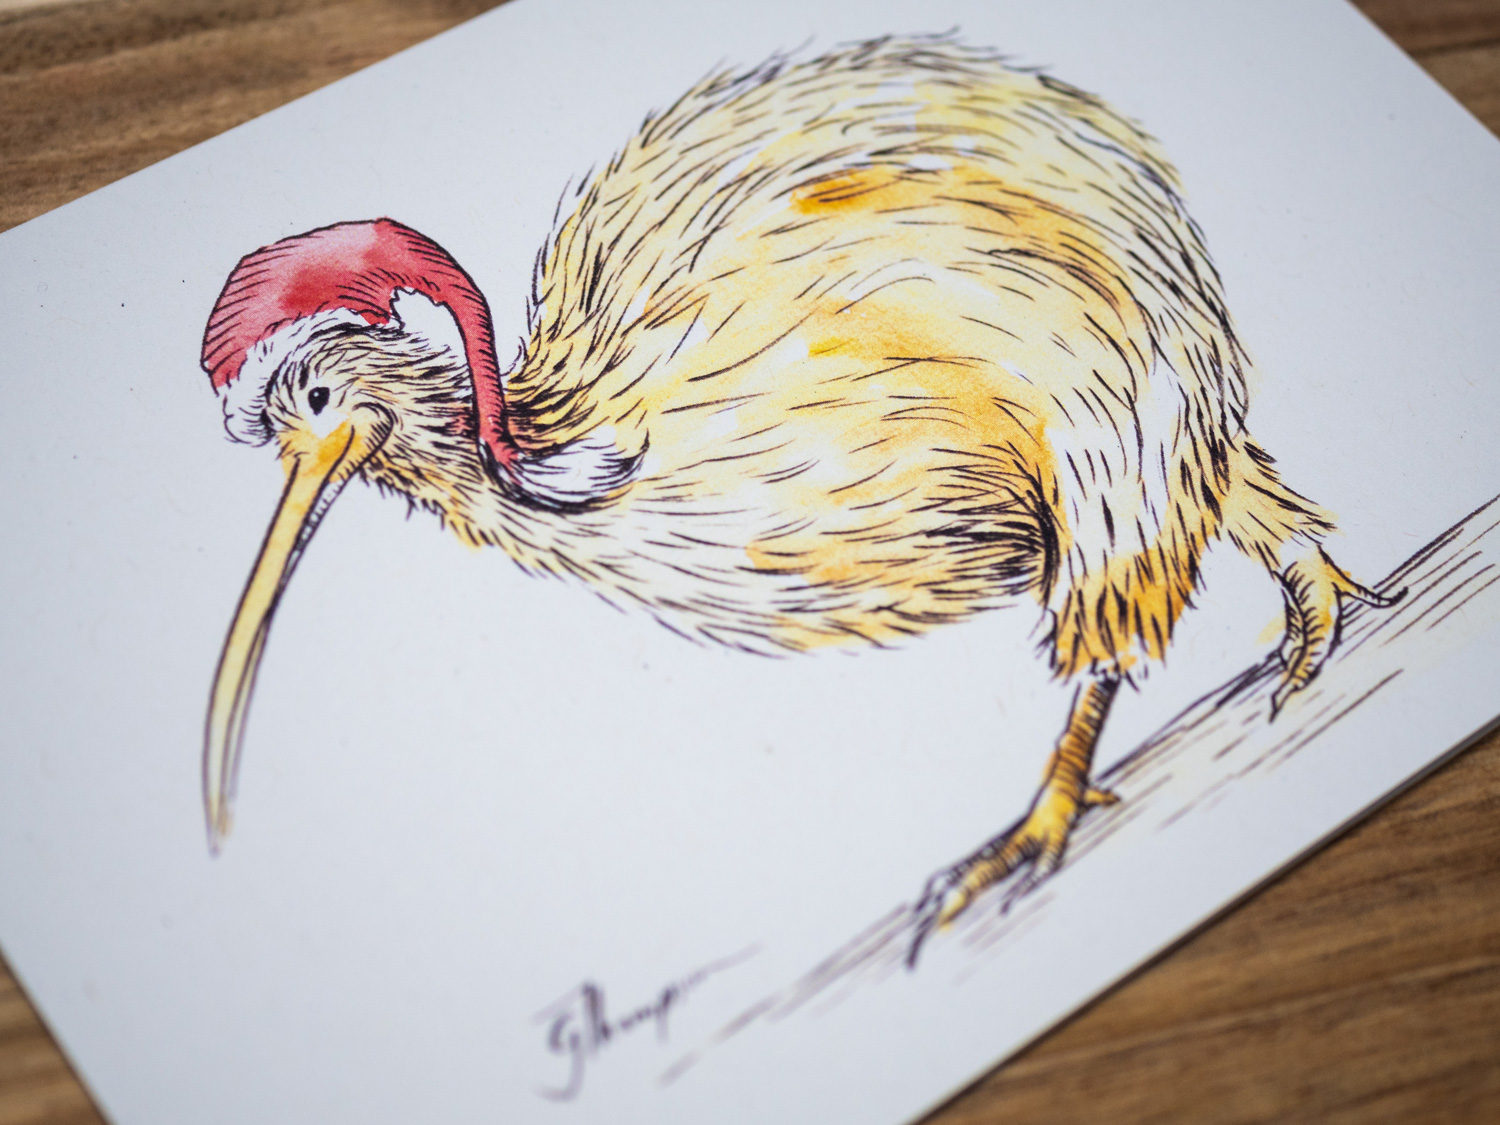 shop-christmas-cards-single-kiwi-detail.jpg